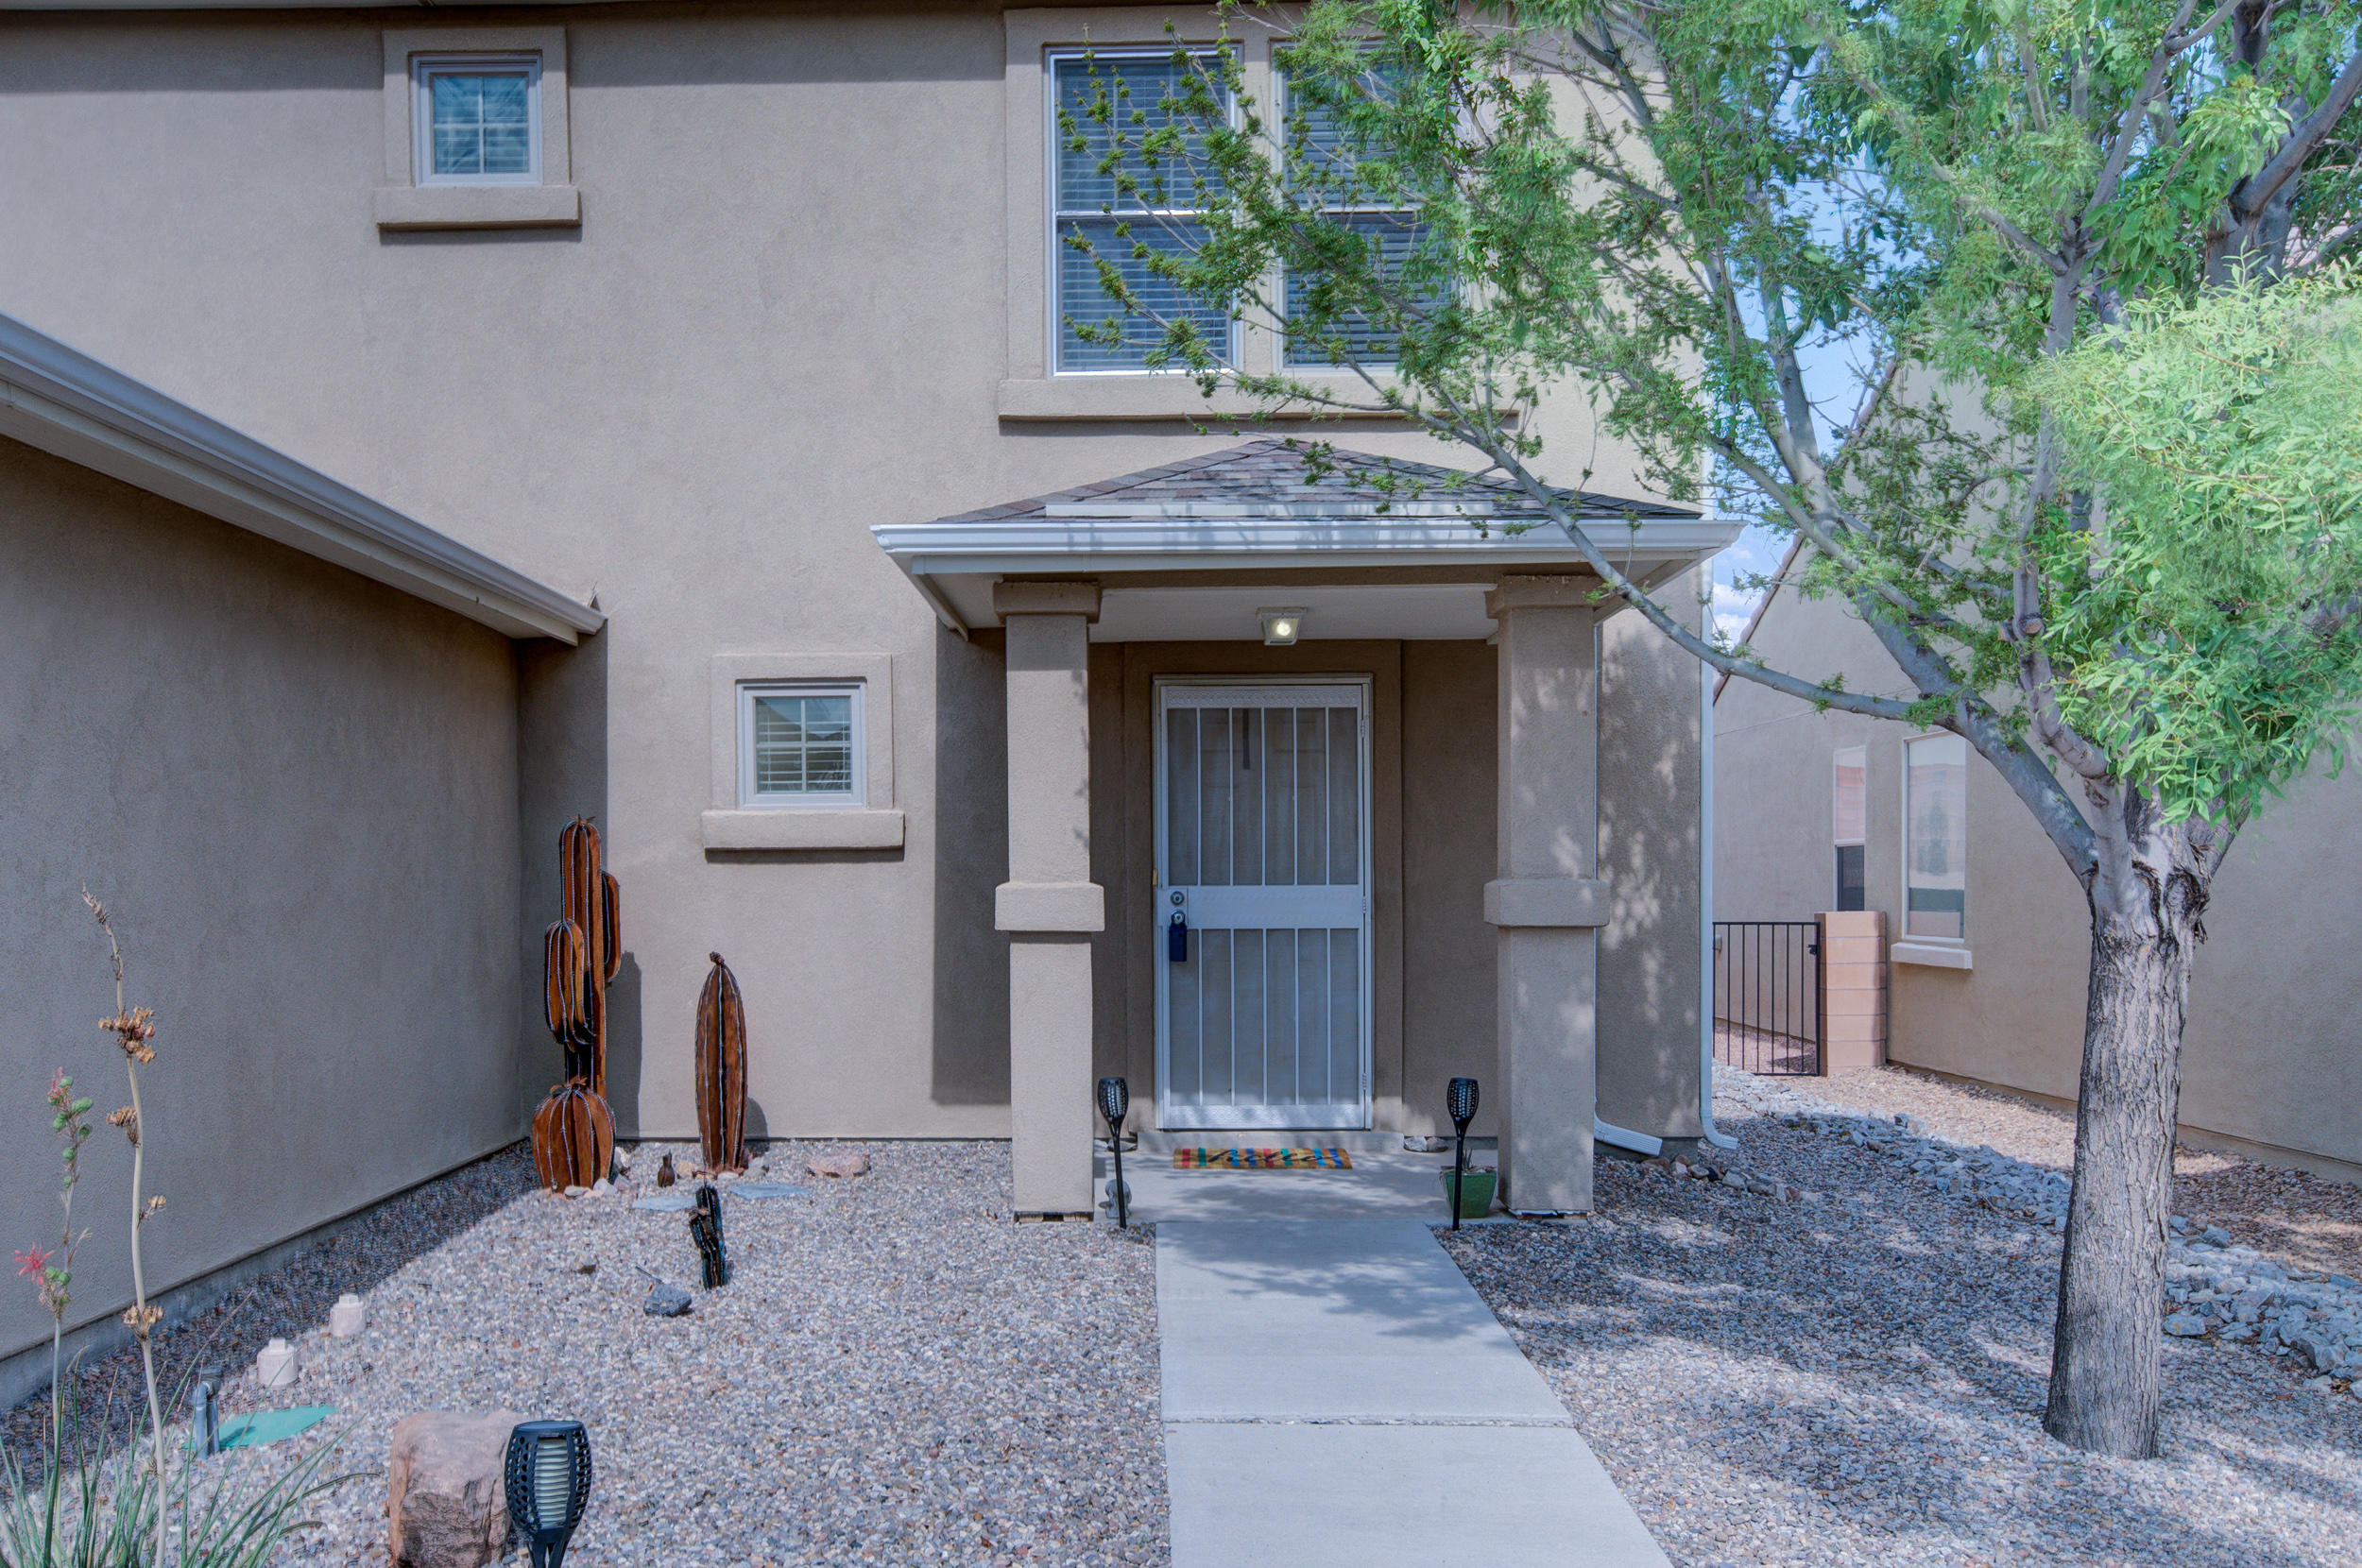 This beautiful Artistic home was a model home is in the desirable Cabezon community! Check out the size of the lot! The first floor features a large living room, dining room and kitchen with breakfast bar, new SS appliances which convey and  large pantry closet. There is tile in all wet areas and laminate in downstairs living areas. The master suite is large and its bath has double vanities, separate tub and shower. Master Suite has a large walk in closet. Home has 2x6 construction, R-21/R38 blown in insulation,and low e-windows for energy efficiency and refrigerated air.  The location is near shopping, restaurants, schools and Presbyterian Hospital. Enjoy the parks, walking trails and nearby city pool! Don't miss out on this one!